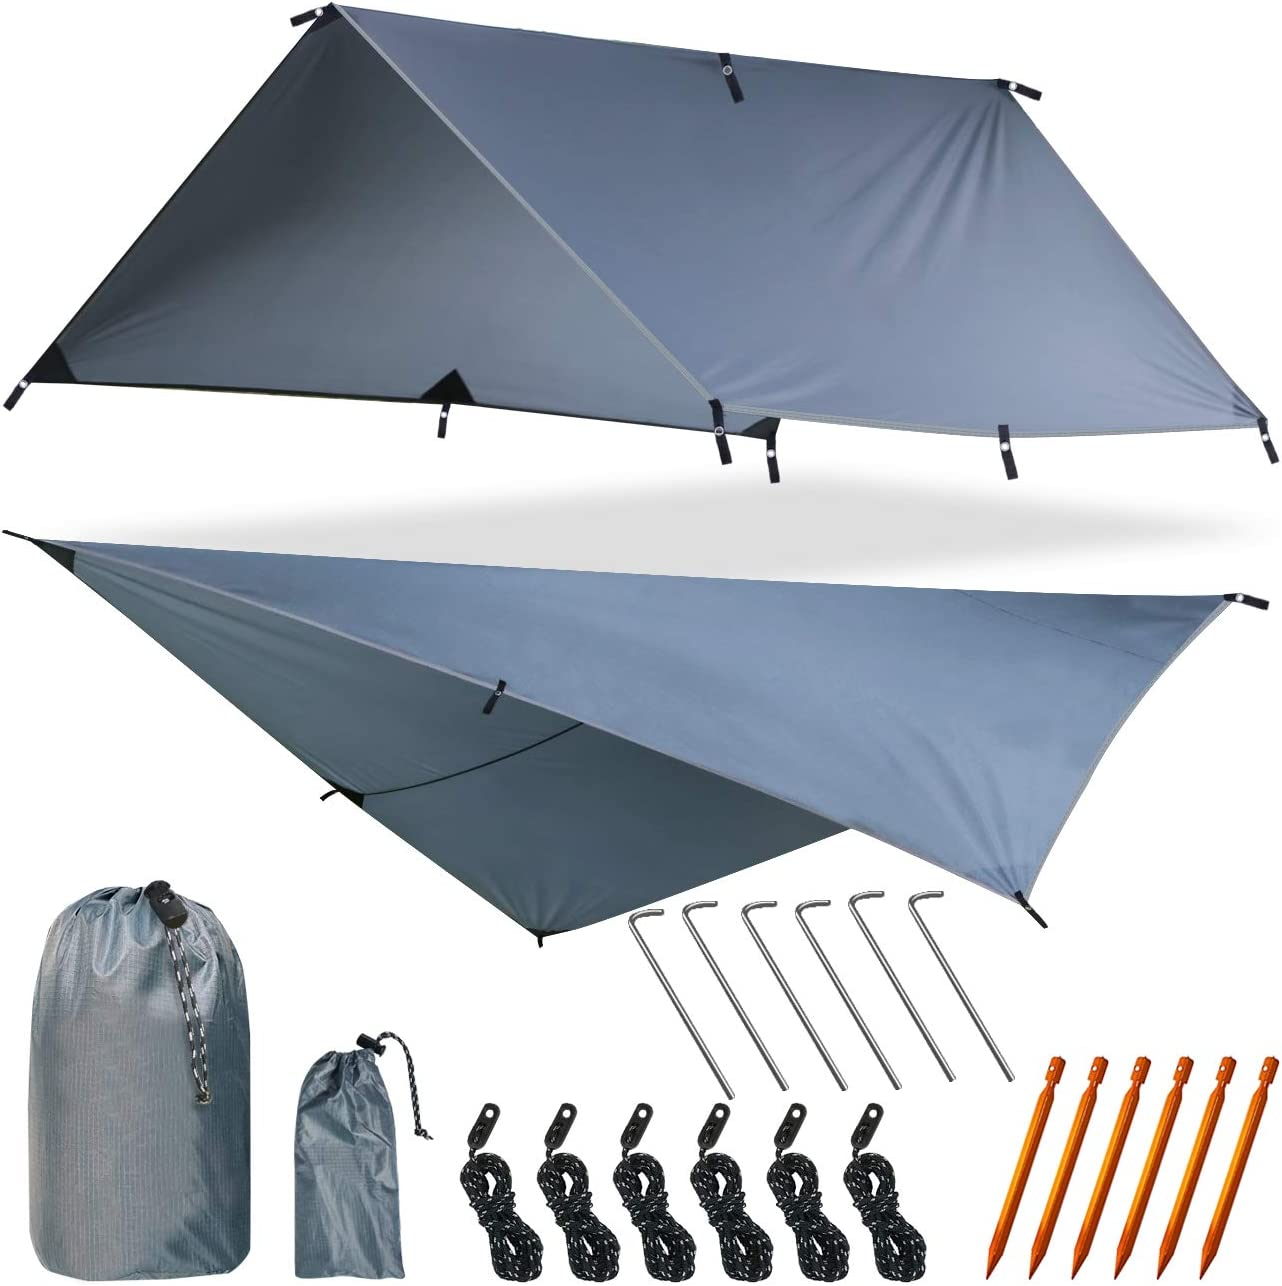 Yztree Fly Tent Tarp Hammock Fly Tent Lightweight Backpacking Camping Shelter 10.5 x10ft Include More Accessorie